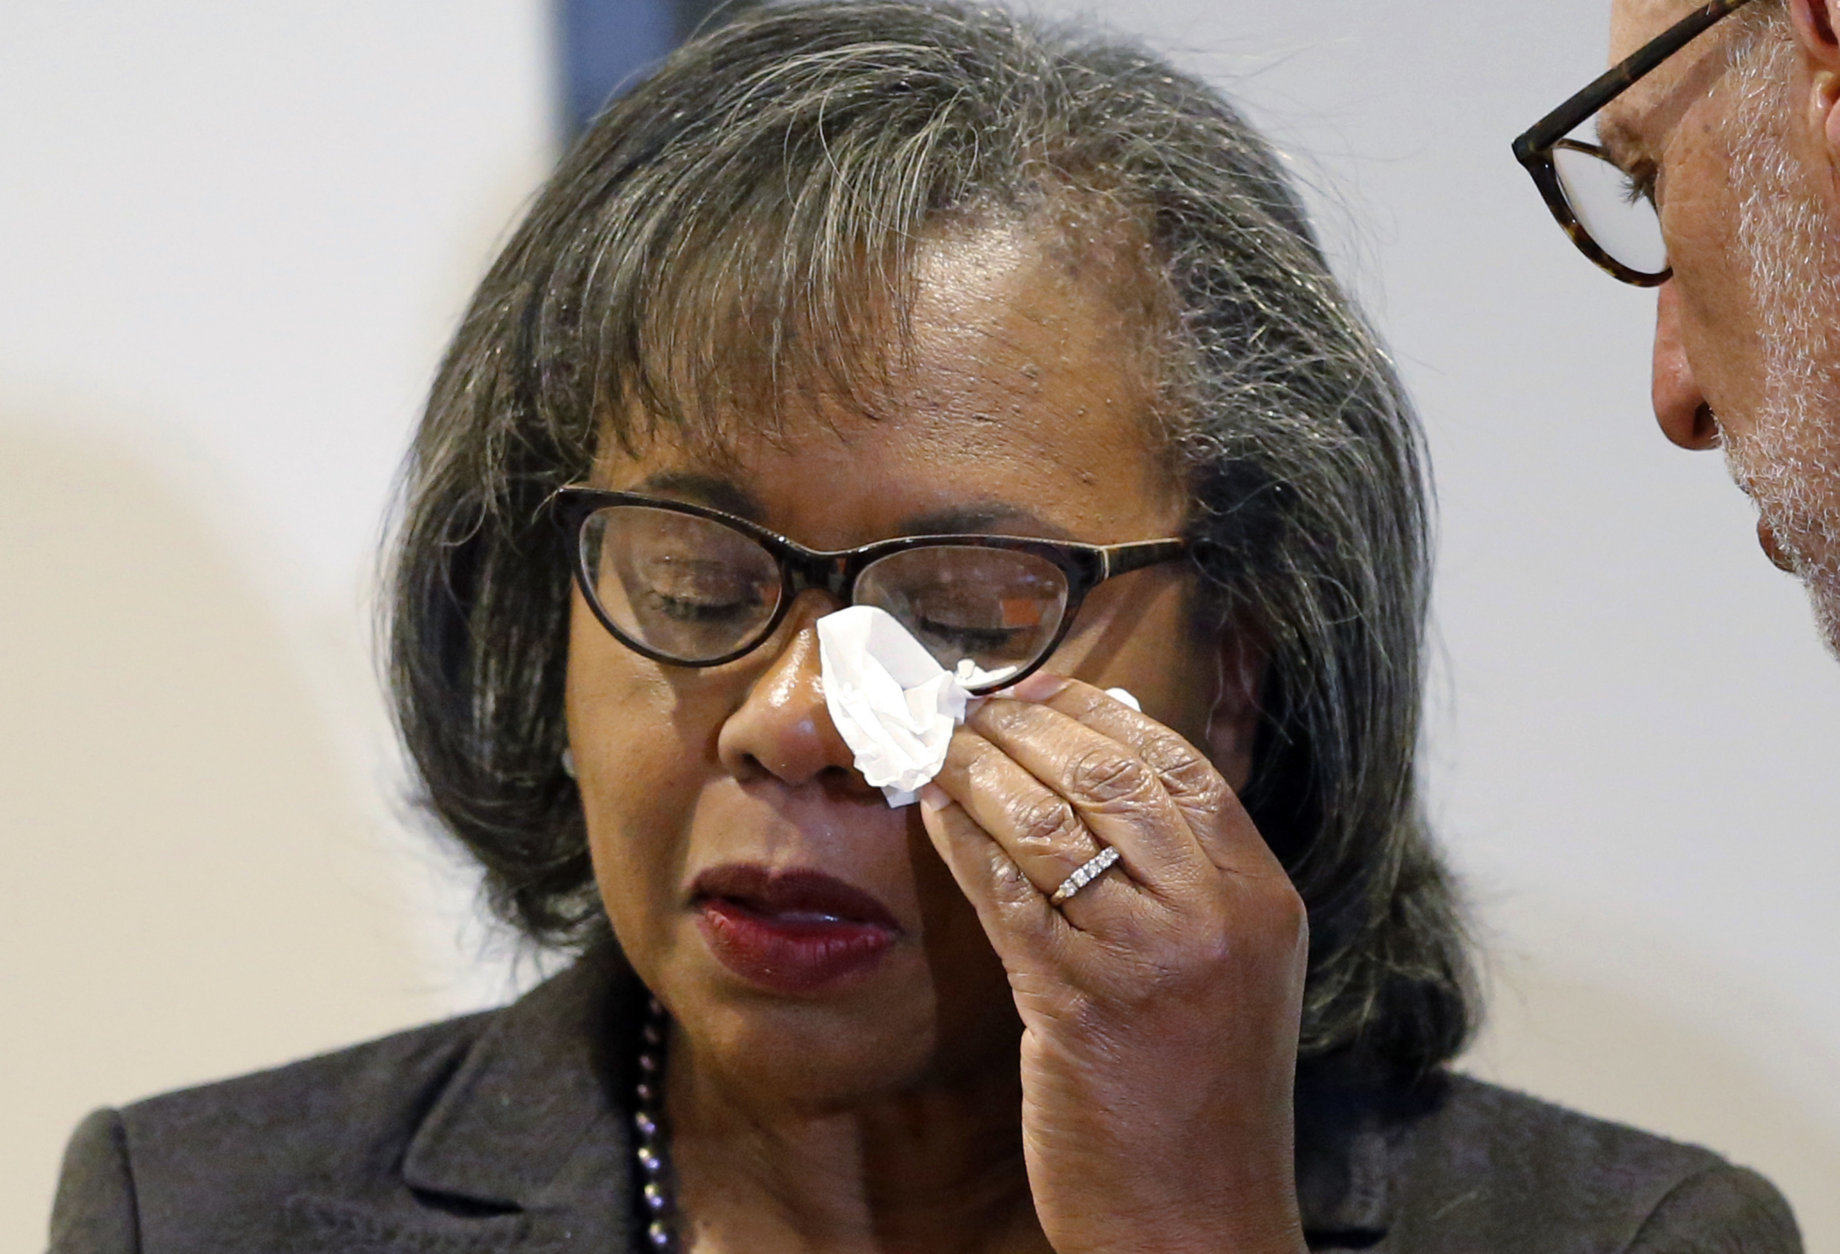 Anita Hill wipes her eye after speaking at the University of Utah on Wednesday, Sept. 26, 2018, in Salt Lake City. Hill has been back in the spotlight since Christine Blasey Ford accused Supreme Court nominee Brett Kavanaugh of sexually assaulting her when the two were in high school. Hill's 1991 testimony against Clarence Thomas riveted the nation. Thomas was confirmed anyway, but the hearing ushered in a new awareness of sexual harassment. (AP Photo/Rick Bowmer)